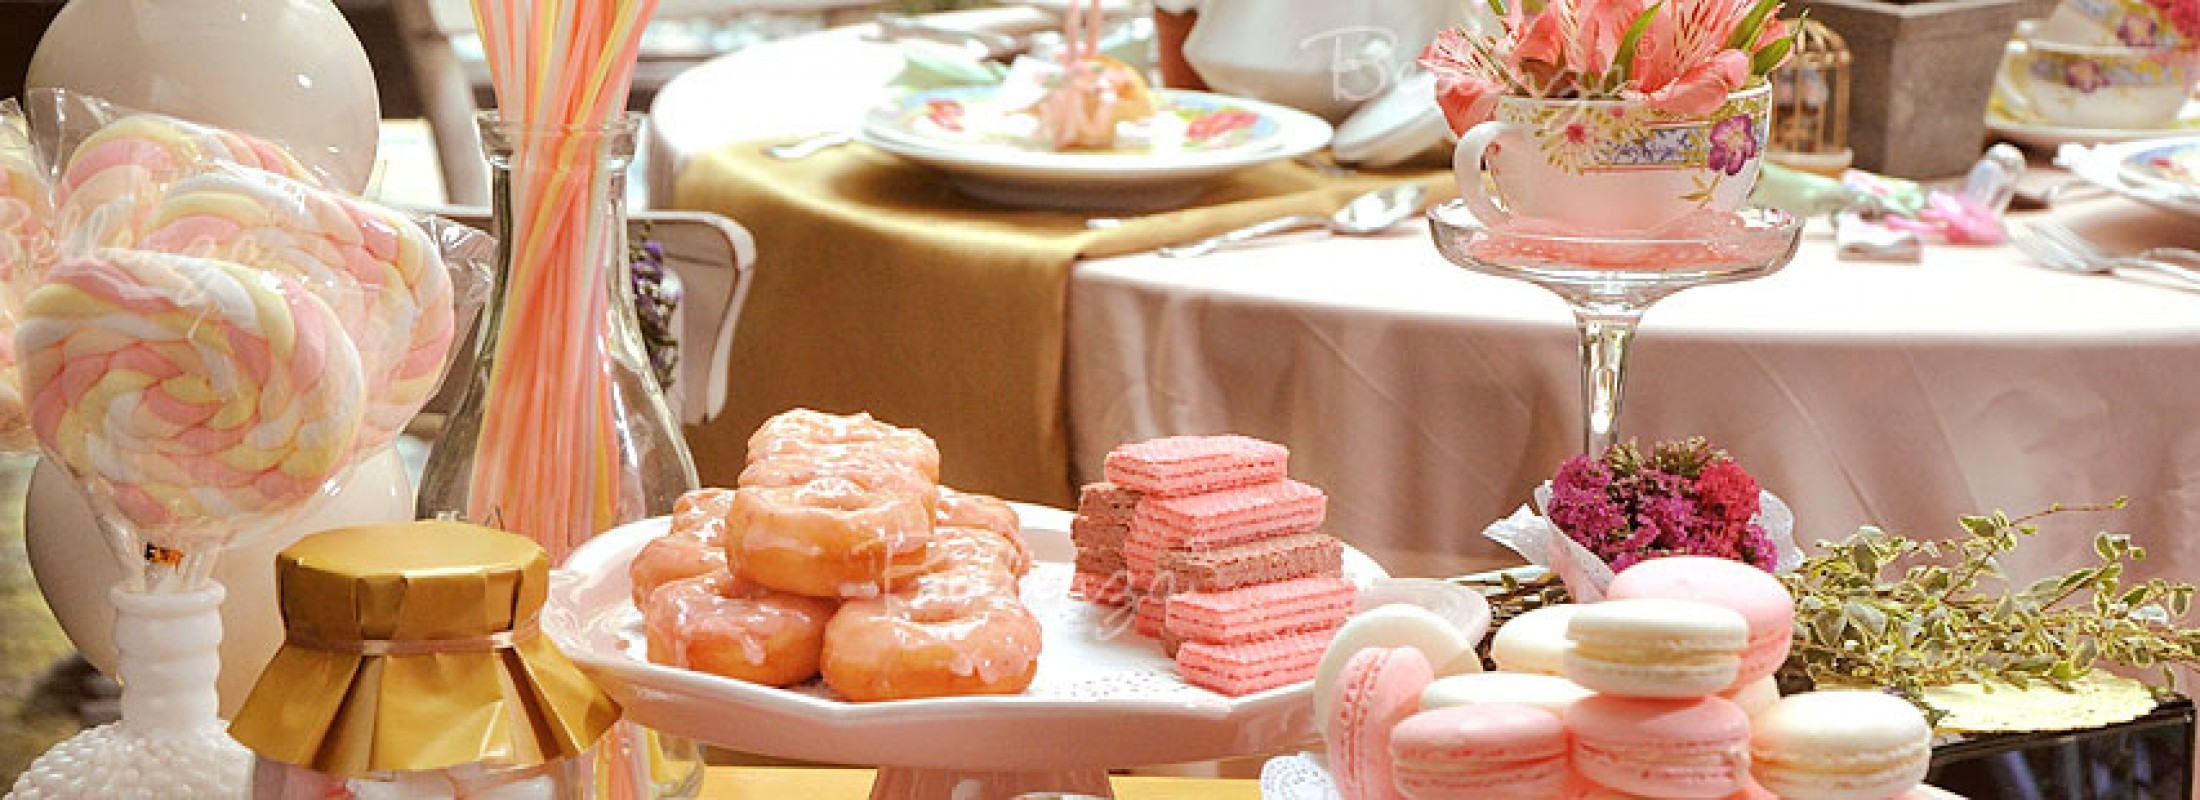 Desserts For Baby Shower  Oh Sweet Baby A Dessert Table for a Summer Baby Shower